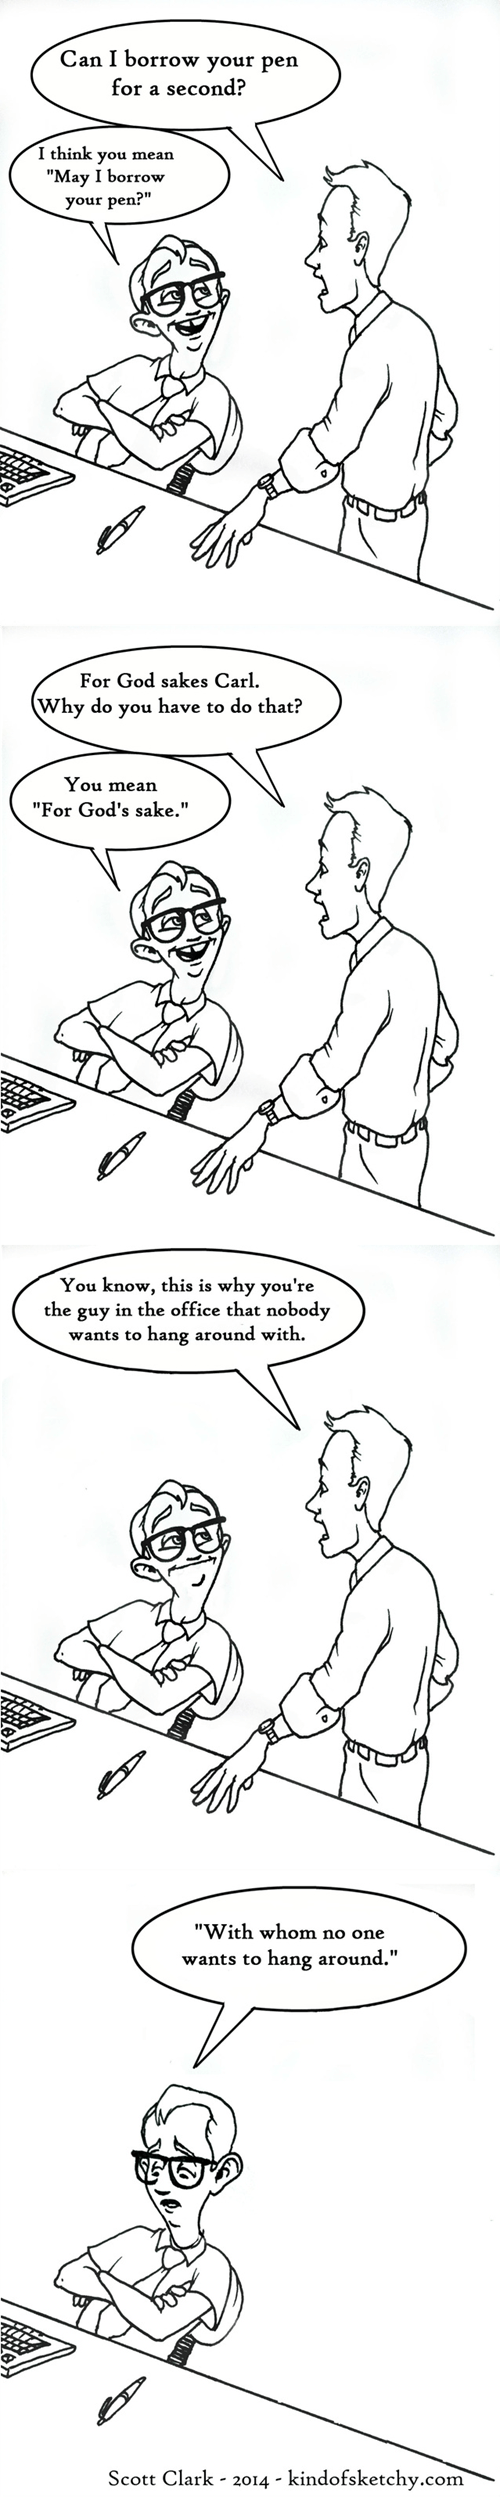 grammar Office web comics - 8289180672